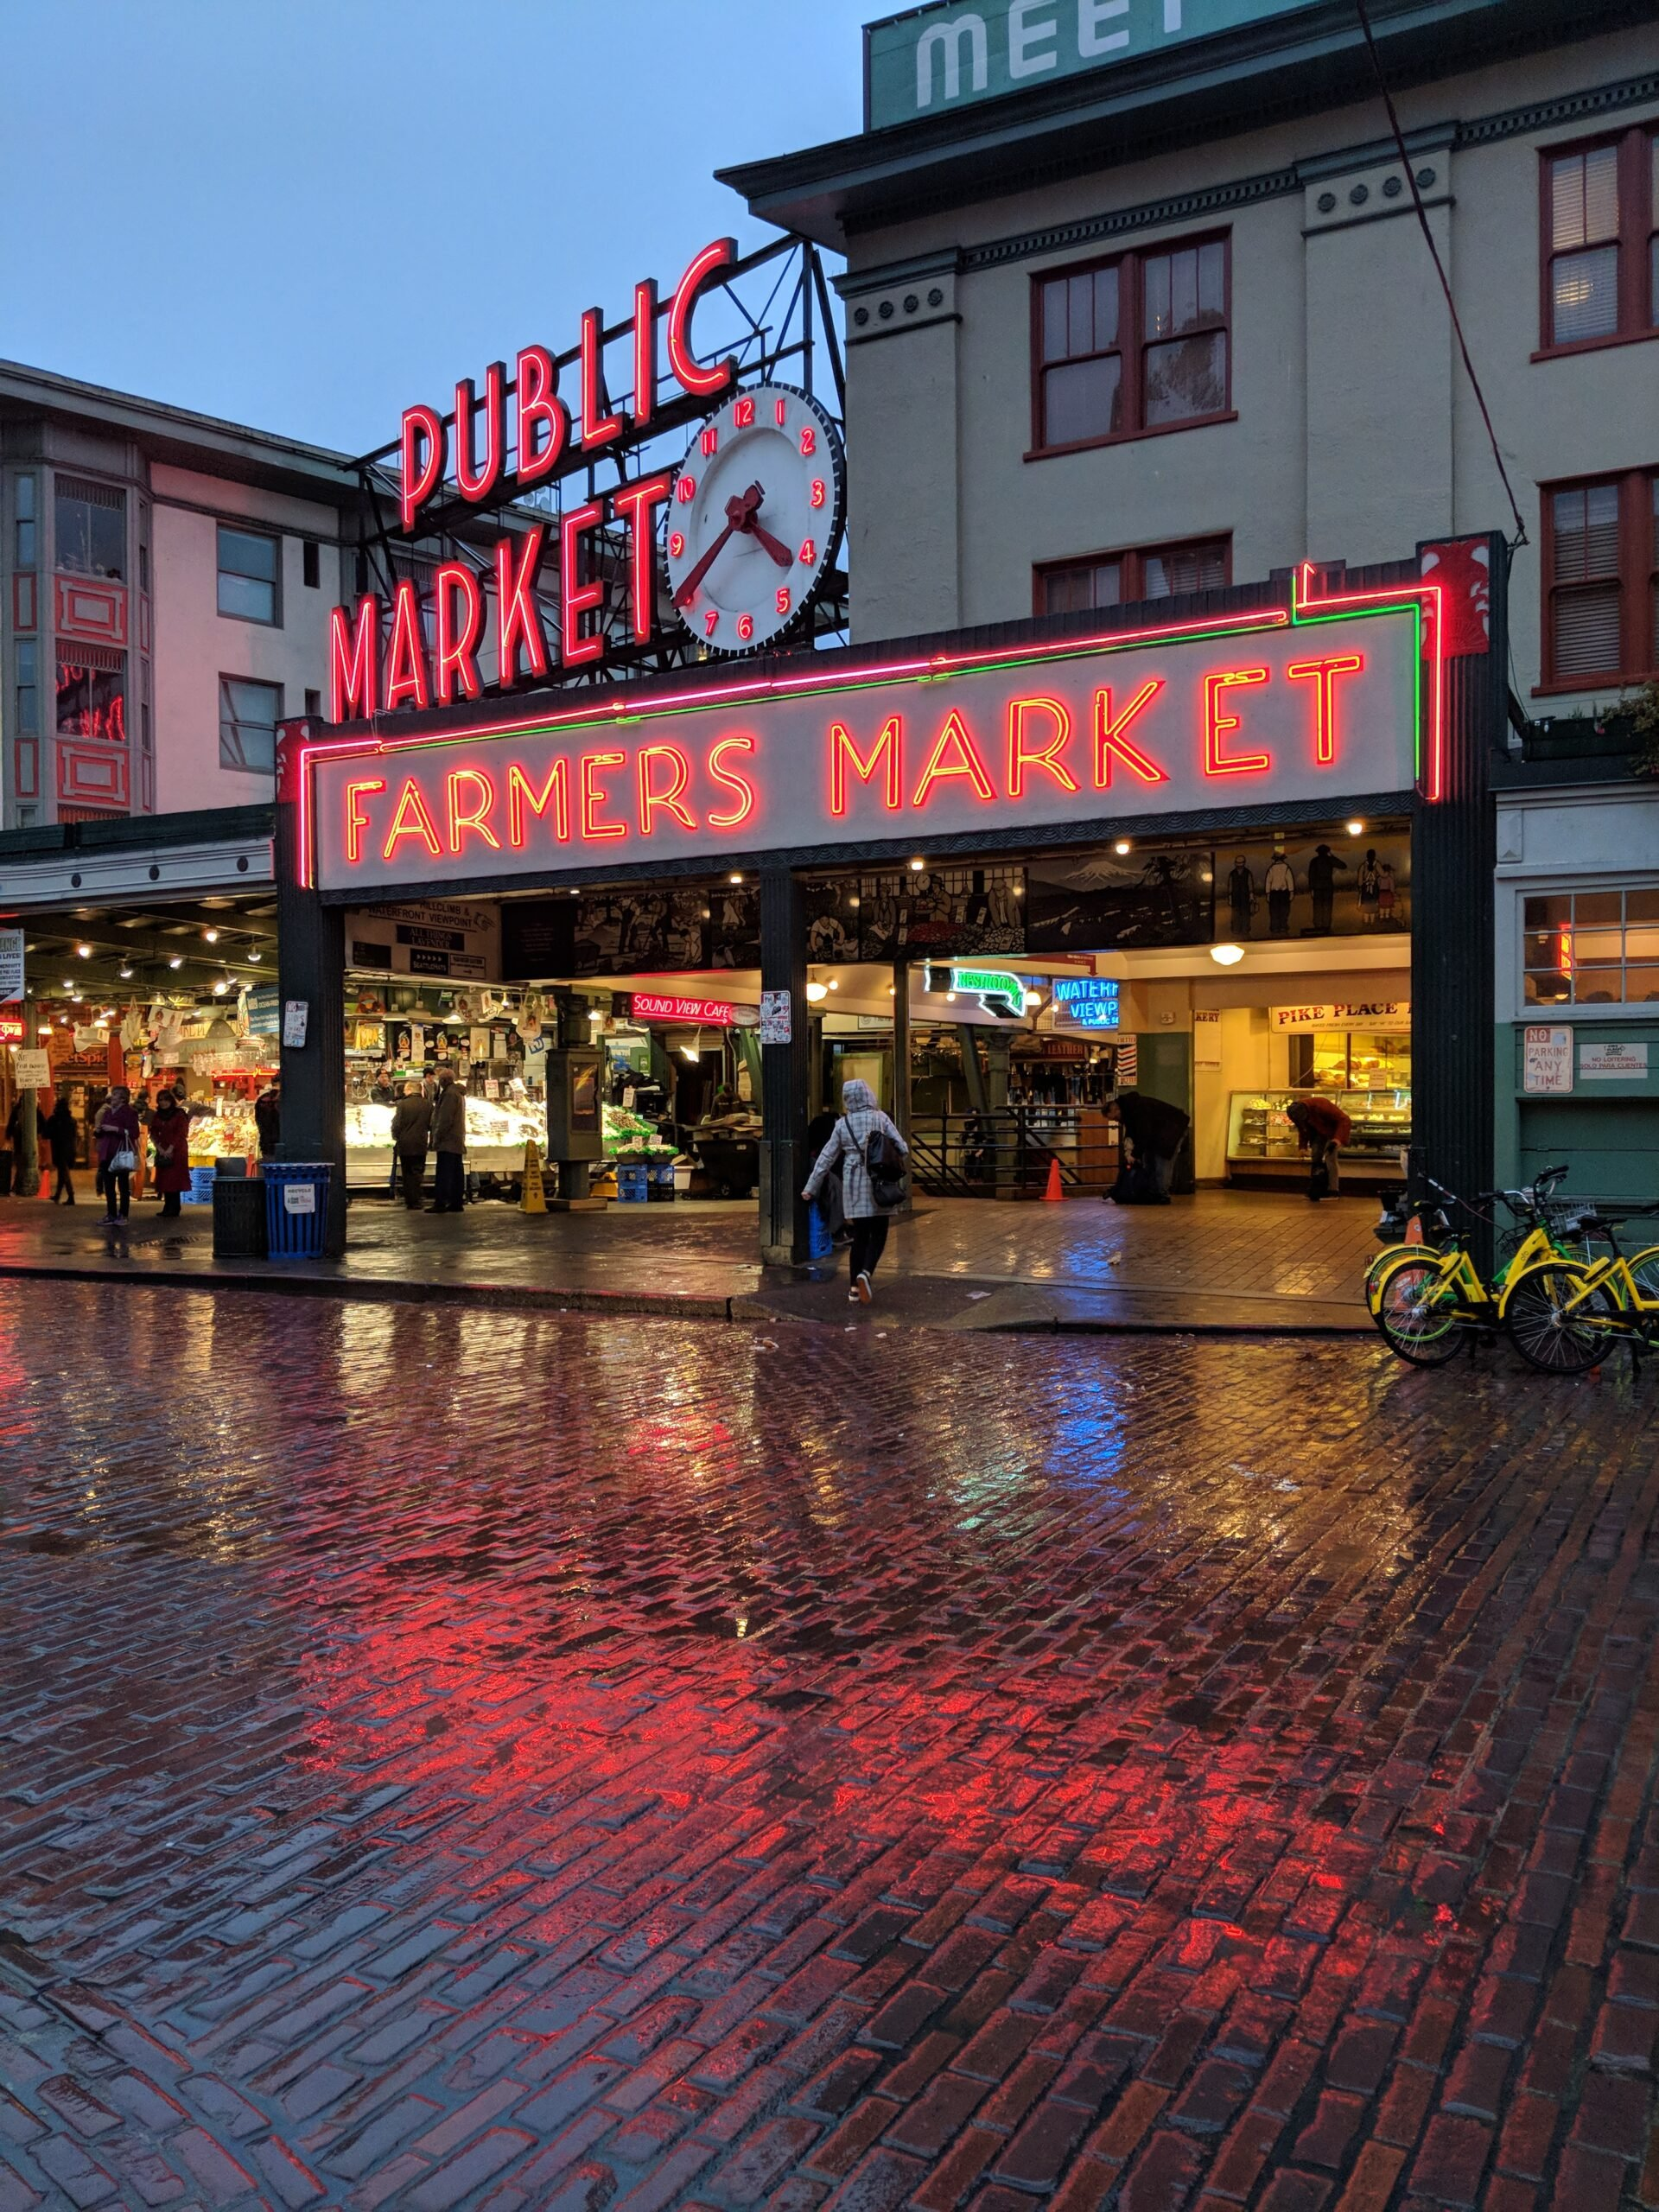 Neon signs illuminated in the rain at pike place market.